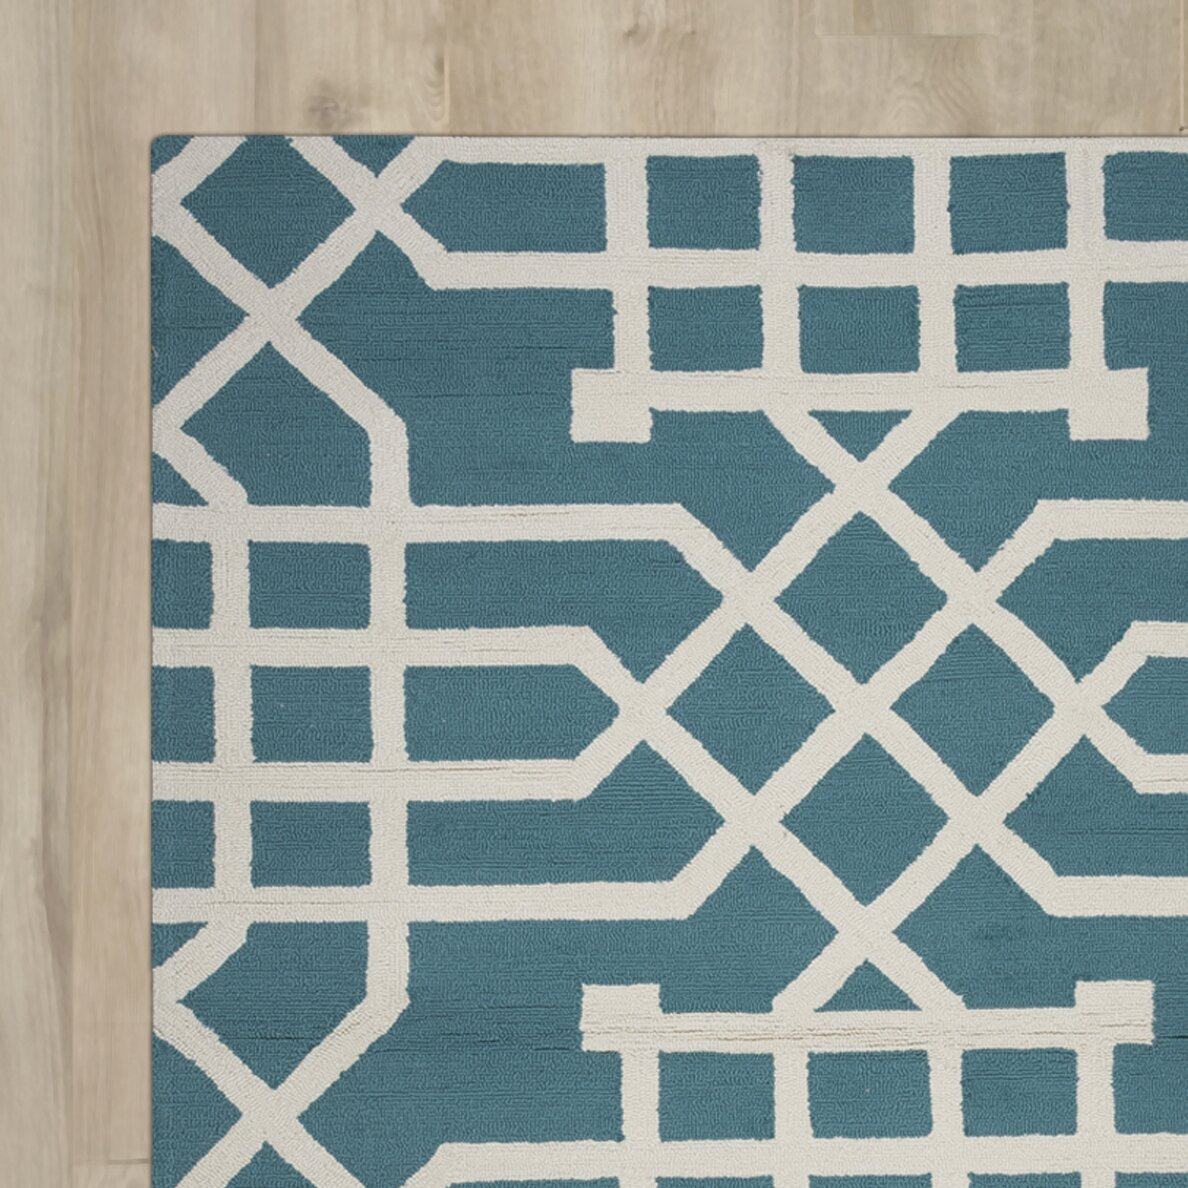 Mercer41 Angela Hand-Tufted Teal/Off White Indoor/Outdoor